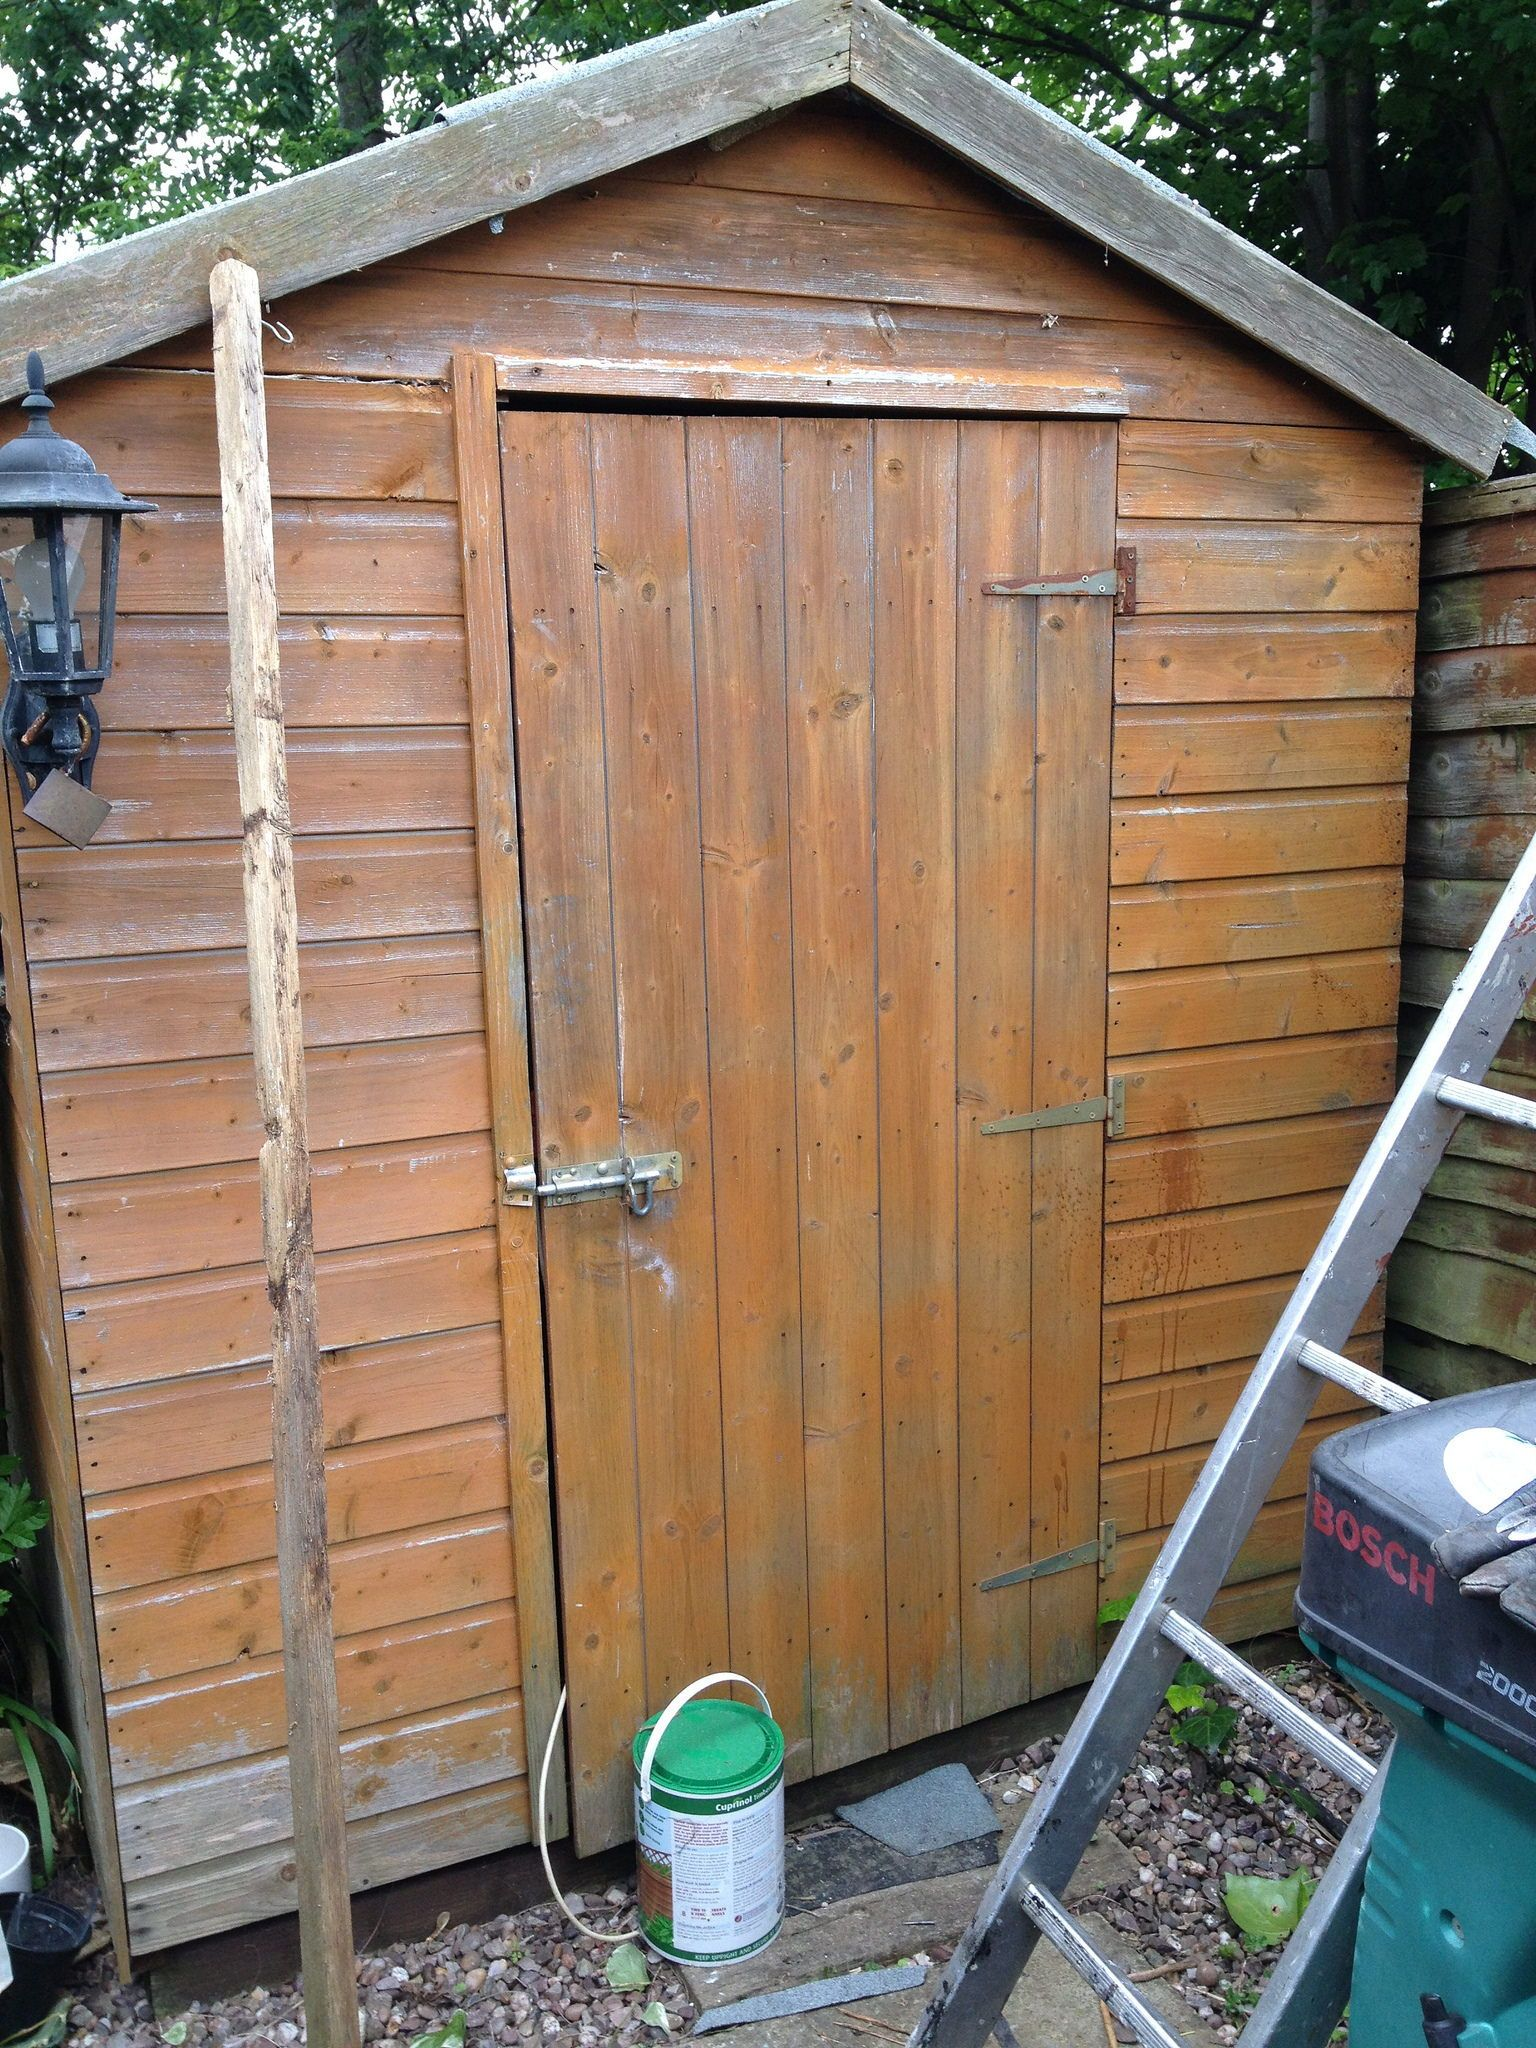 Shed Plans That Are Easy To Use Very Affordable And Fun To Build With All Plans Come It Has Lots Of Charm And Character With Shed Shed Plans Run In Shed